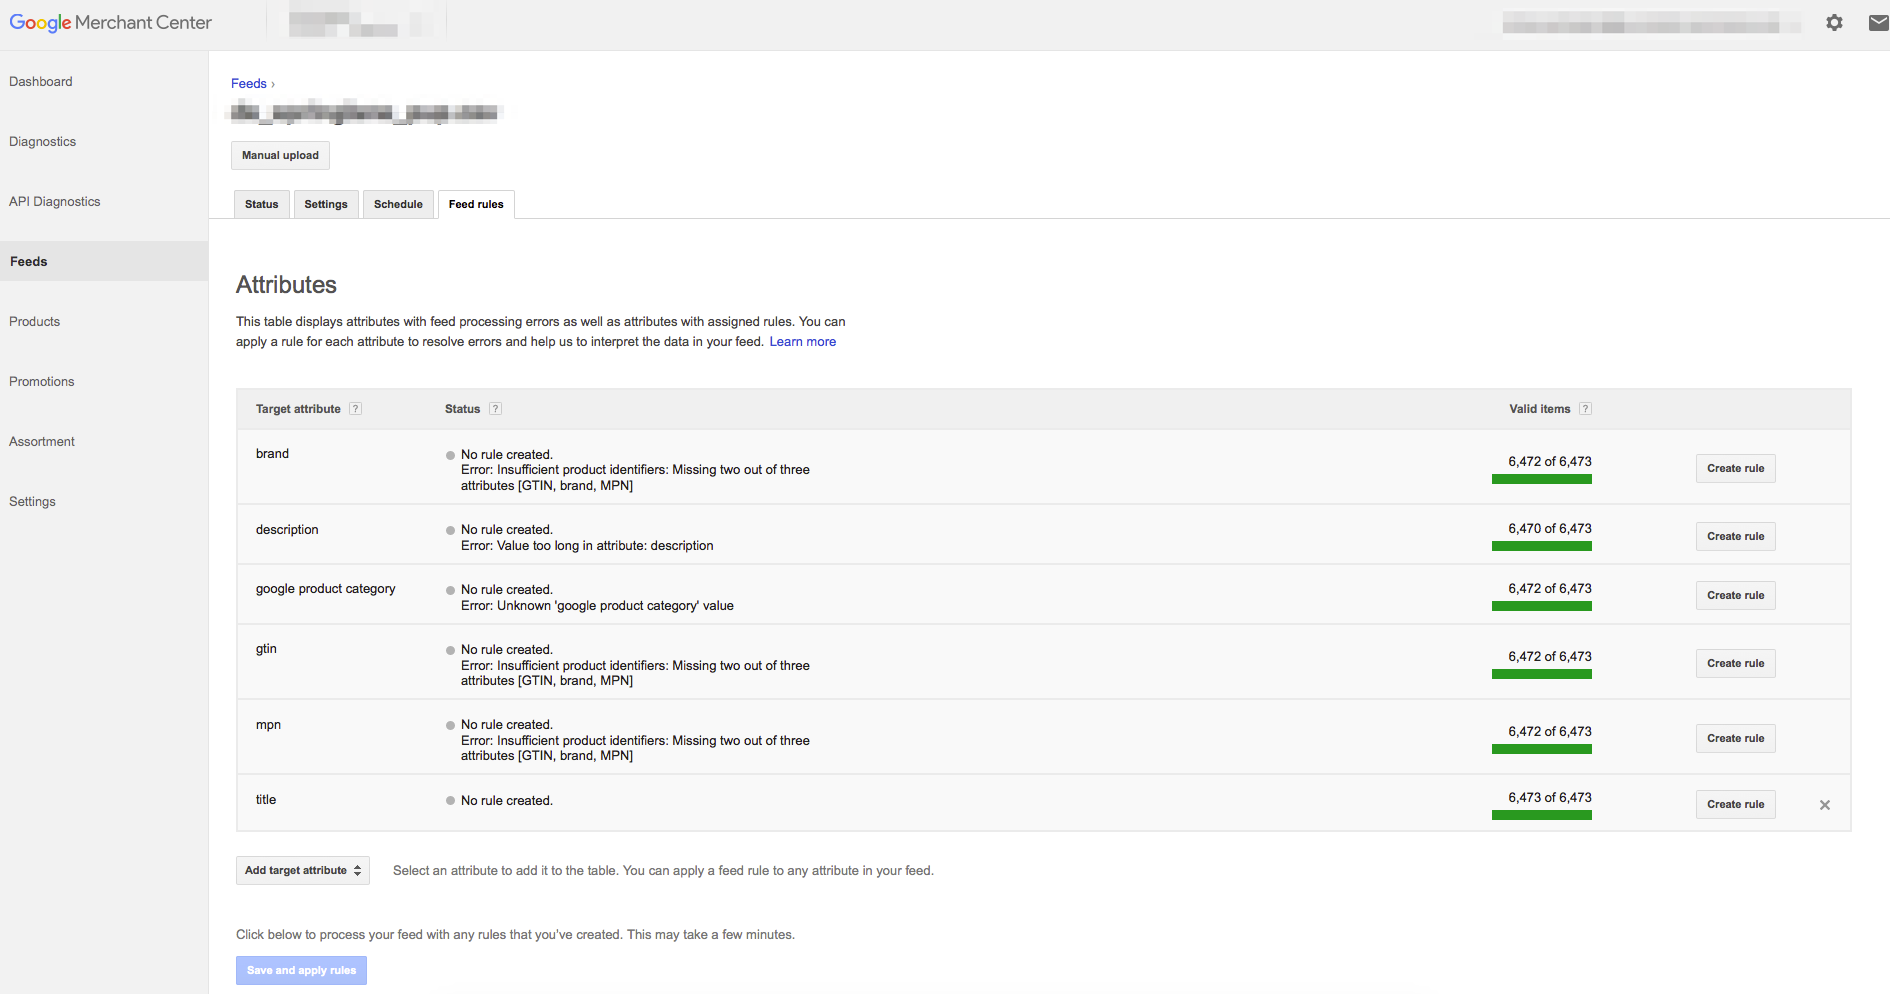 You can now edit your feed in the Google Merchant Center